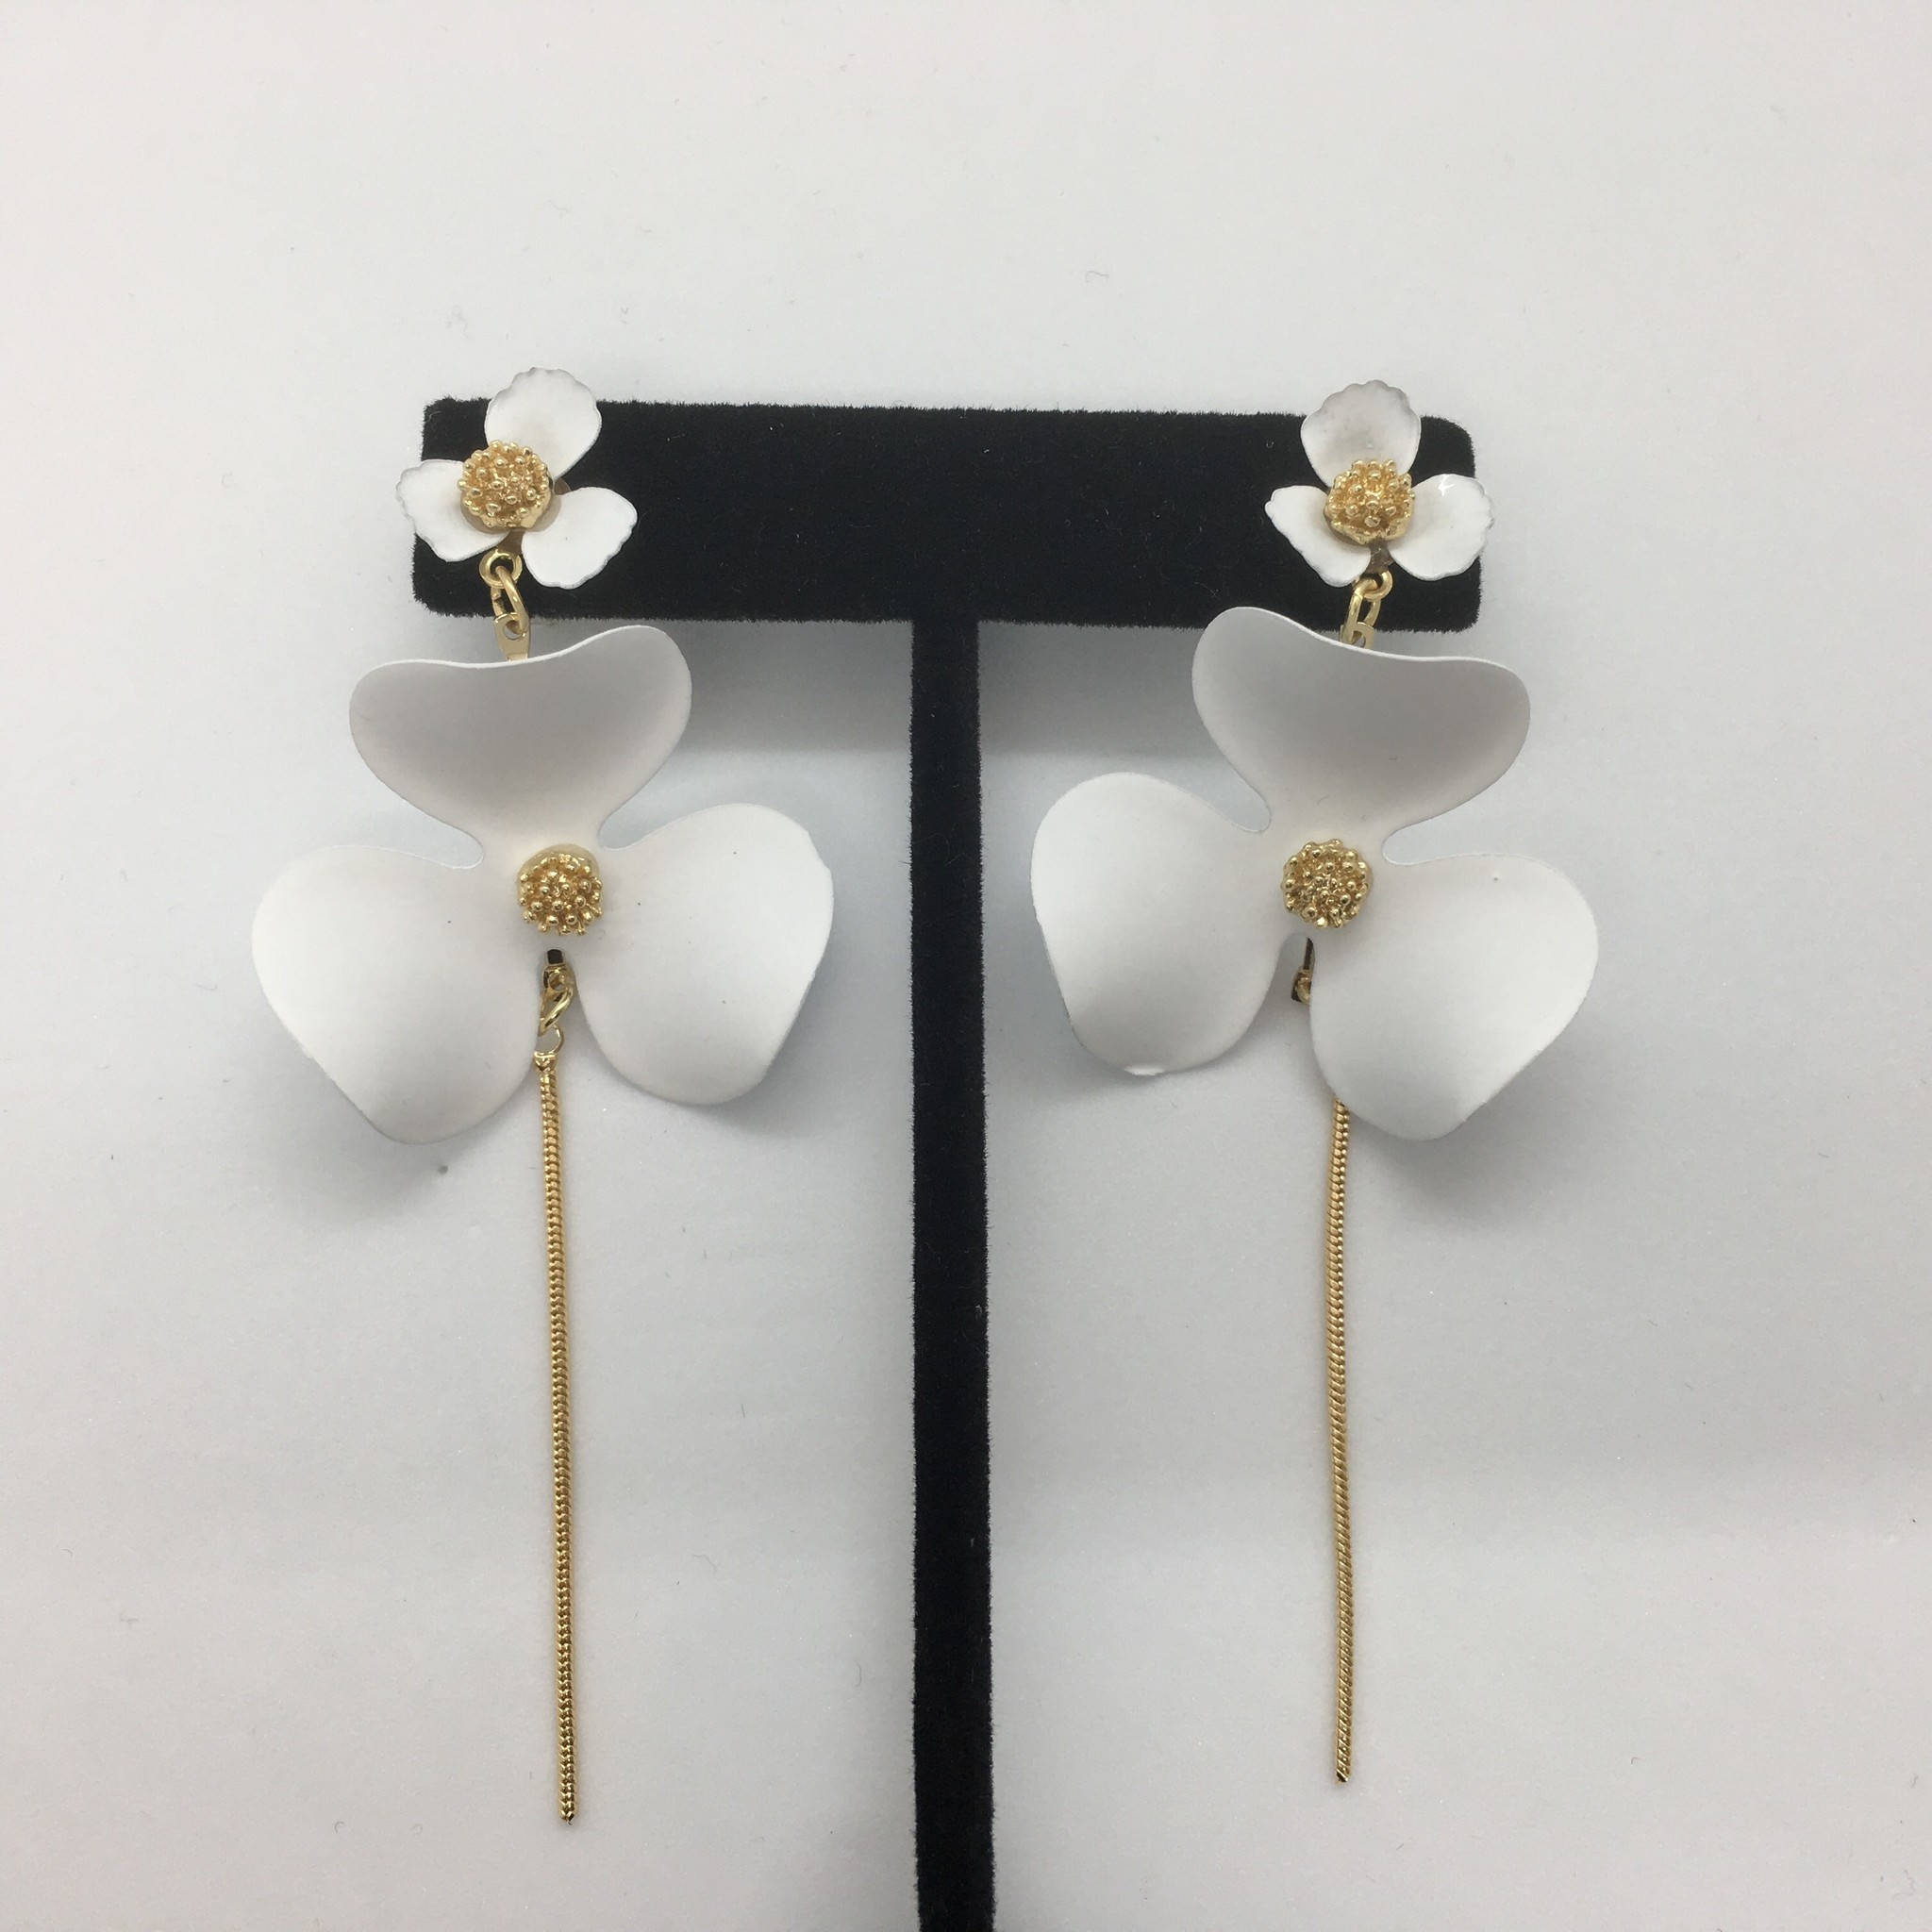 Sooley Designs Double Floral Chain Earrings